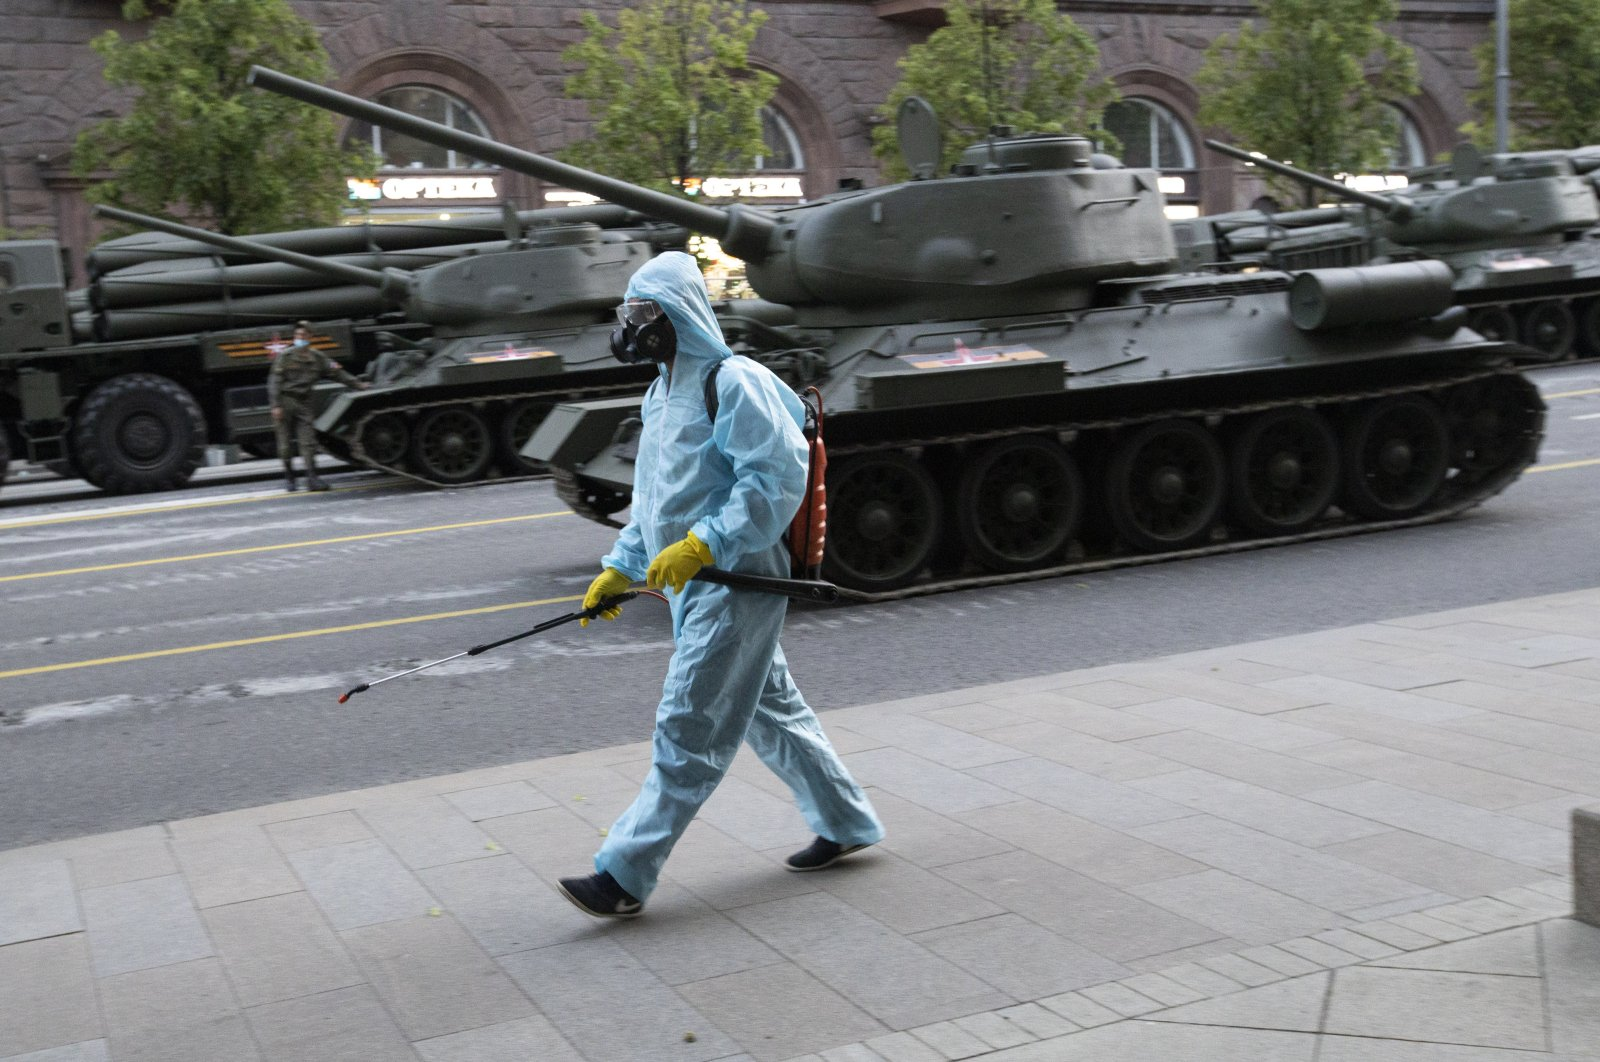 A municipal employee in a protective suit disinfects an area as a measure against the coronavirus outbreak while World War II Soviet-made tanks wait to start a rehearsal for the Victory Day military parade in Moscow, Russia, June 17, 2020. (AP Photo)